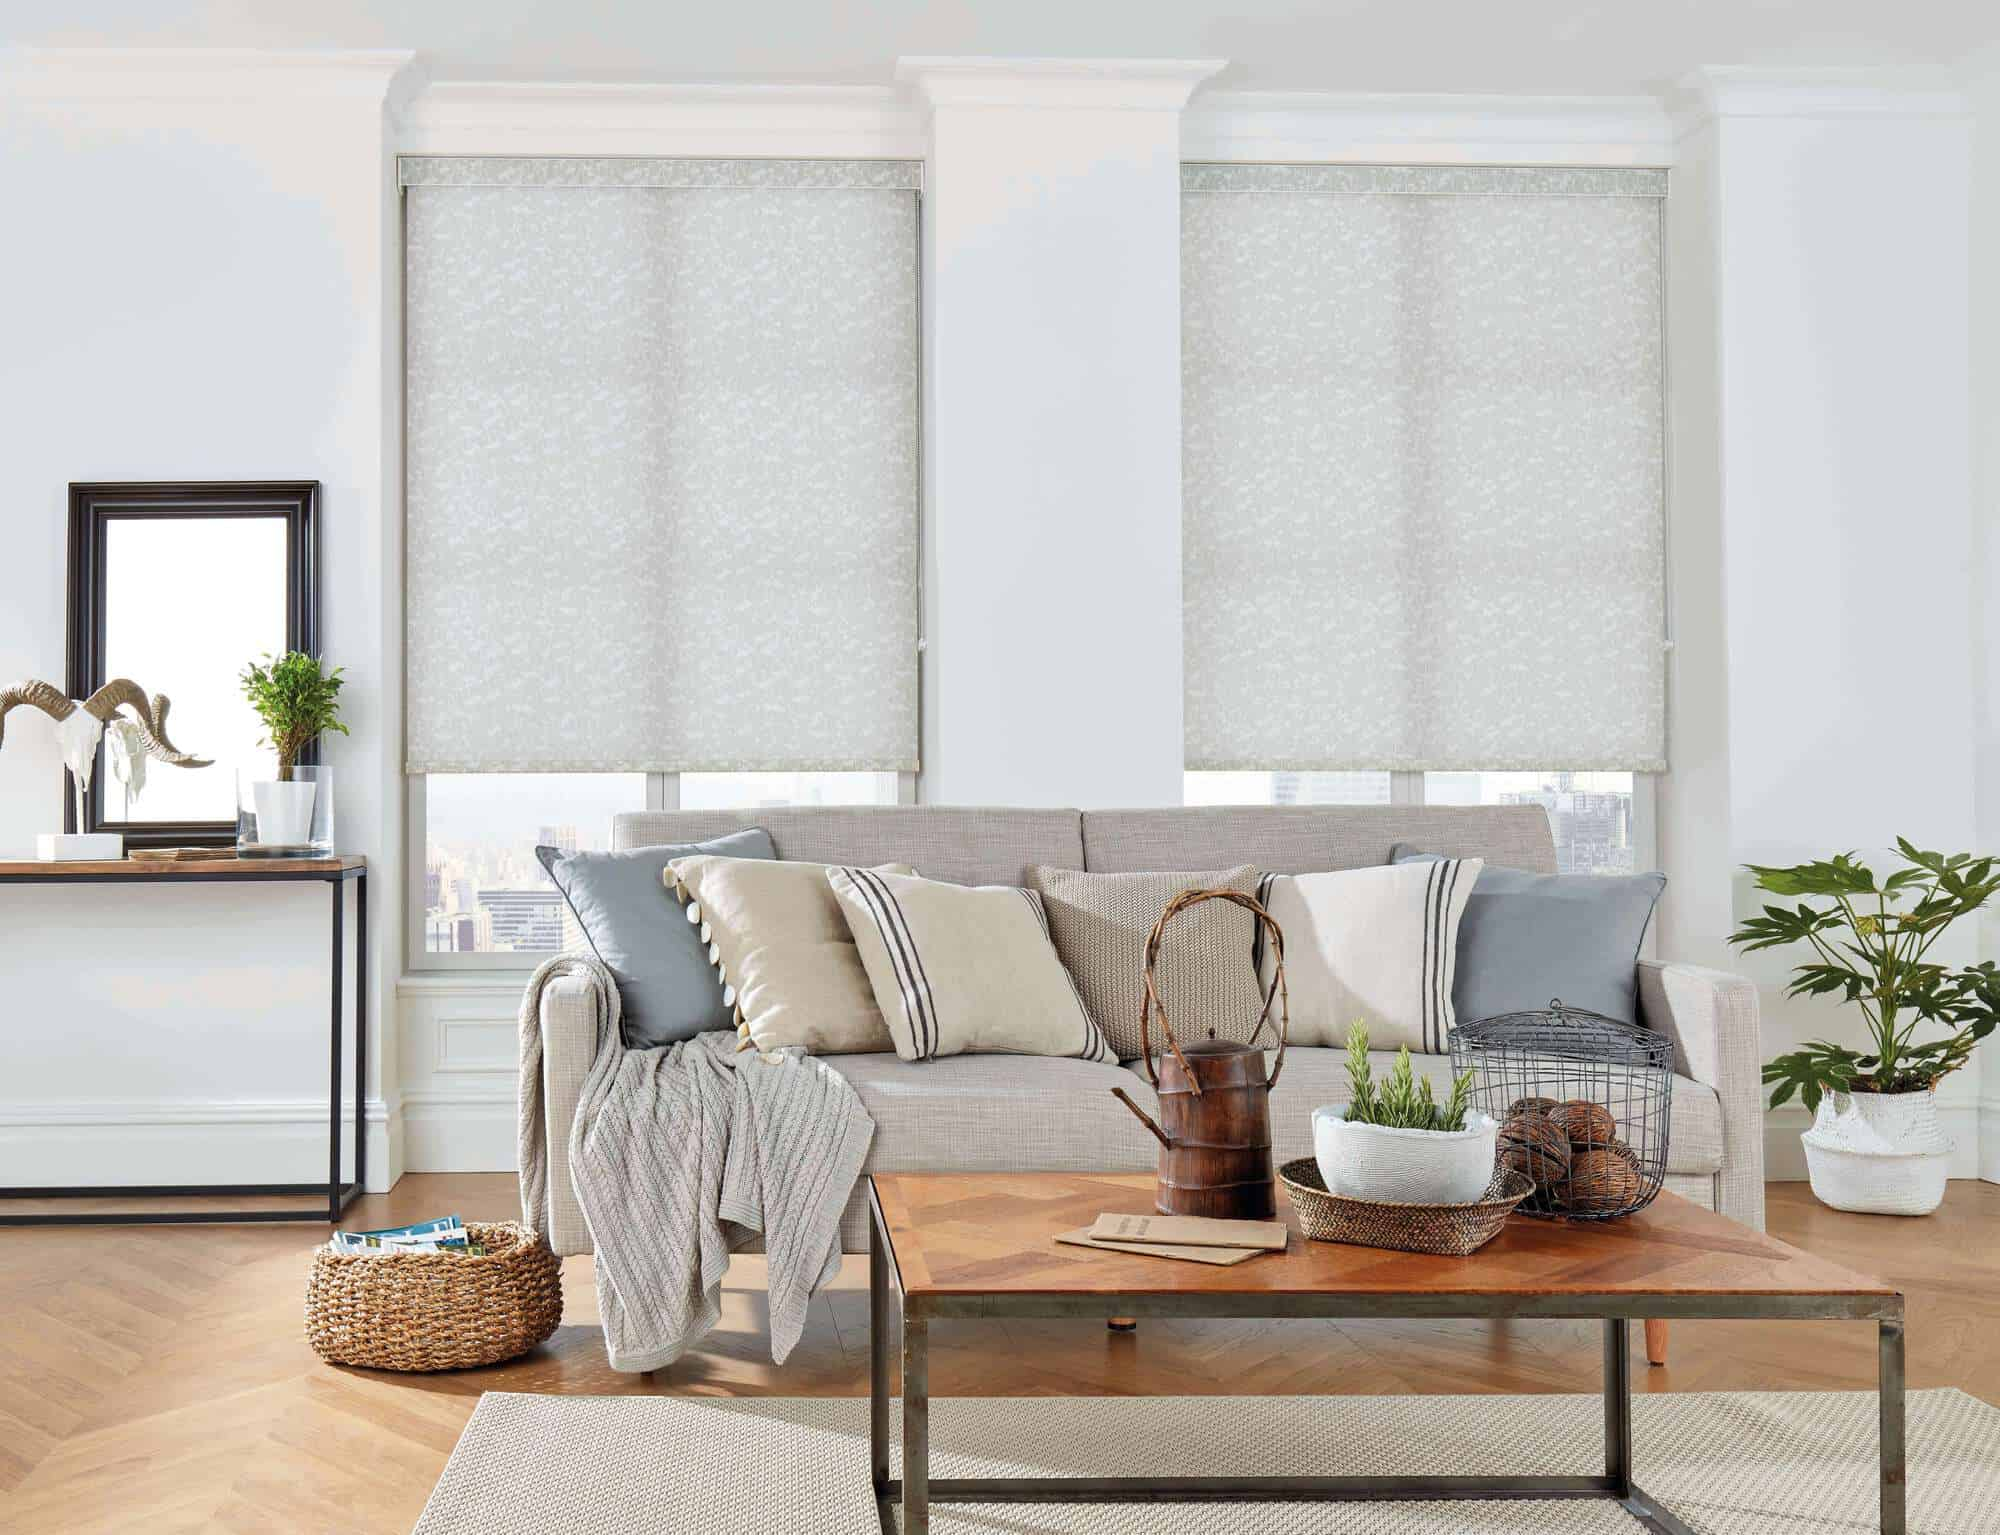 Meadow Lark Roller Blinds Glasgow